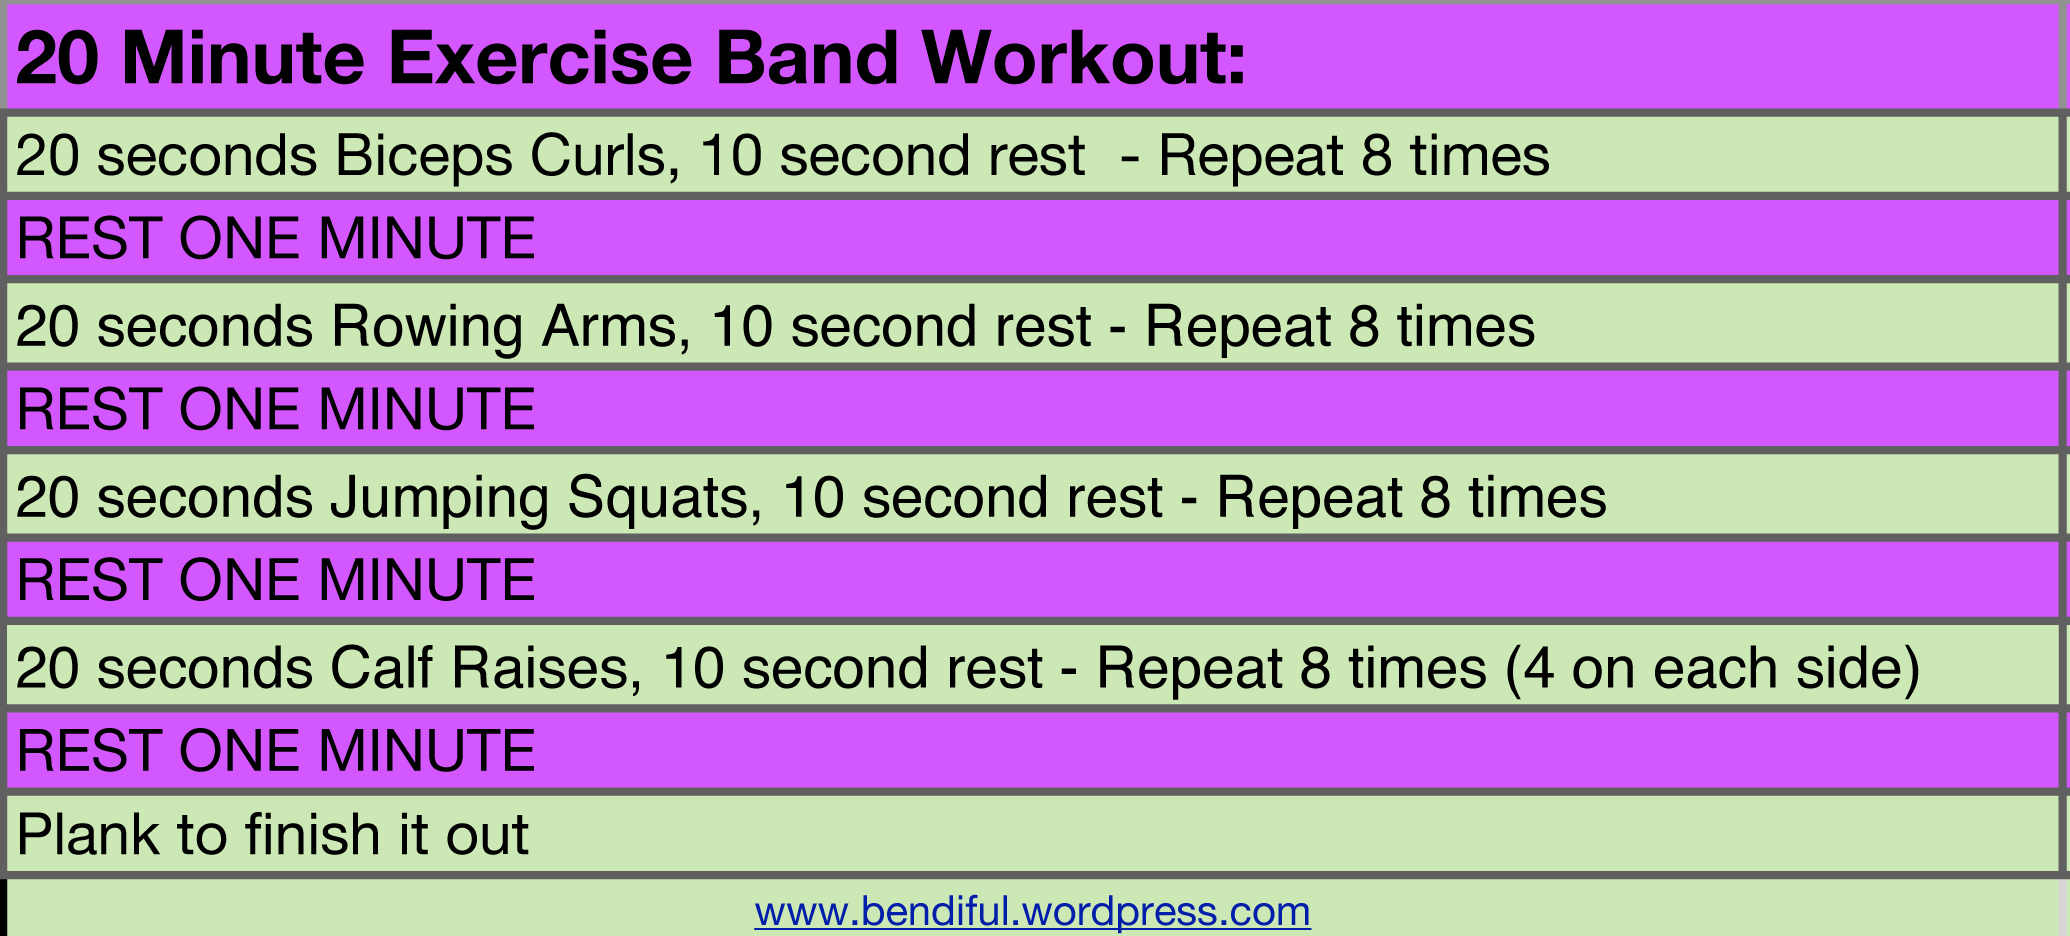 Exercise Band Workout from Bendifulblog.com